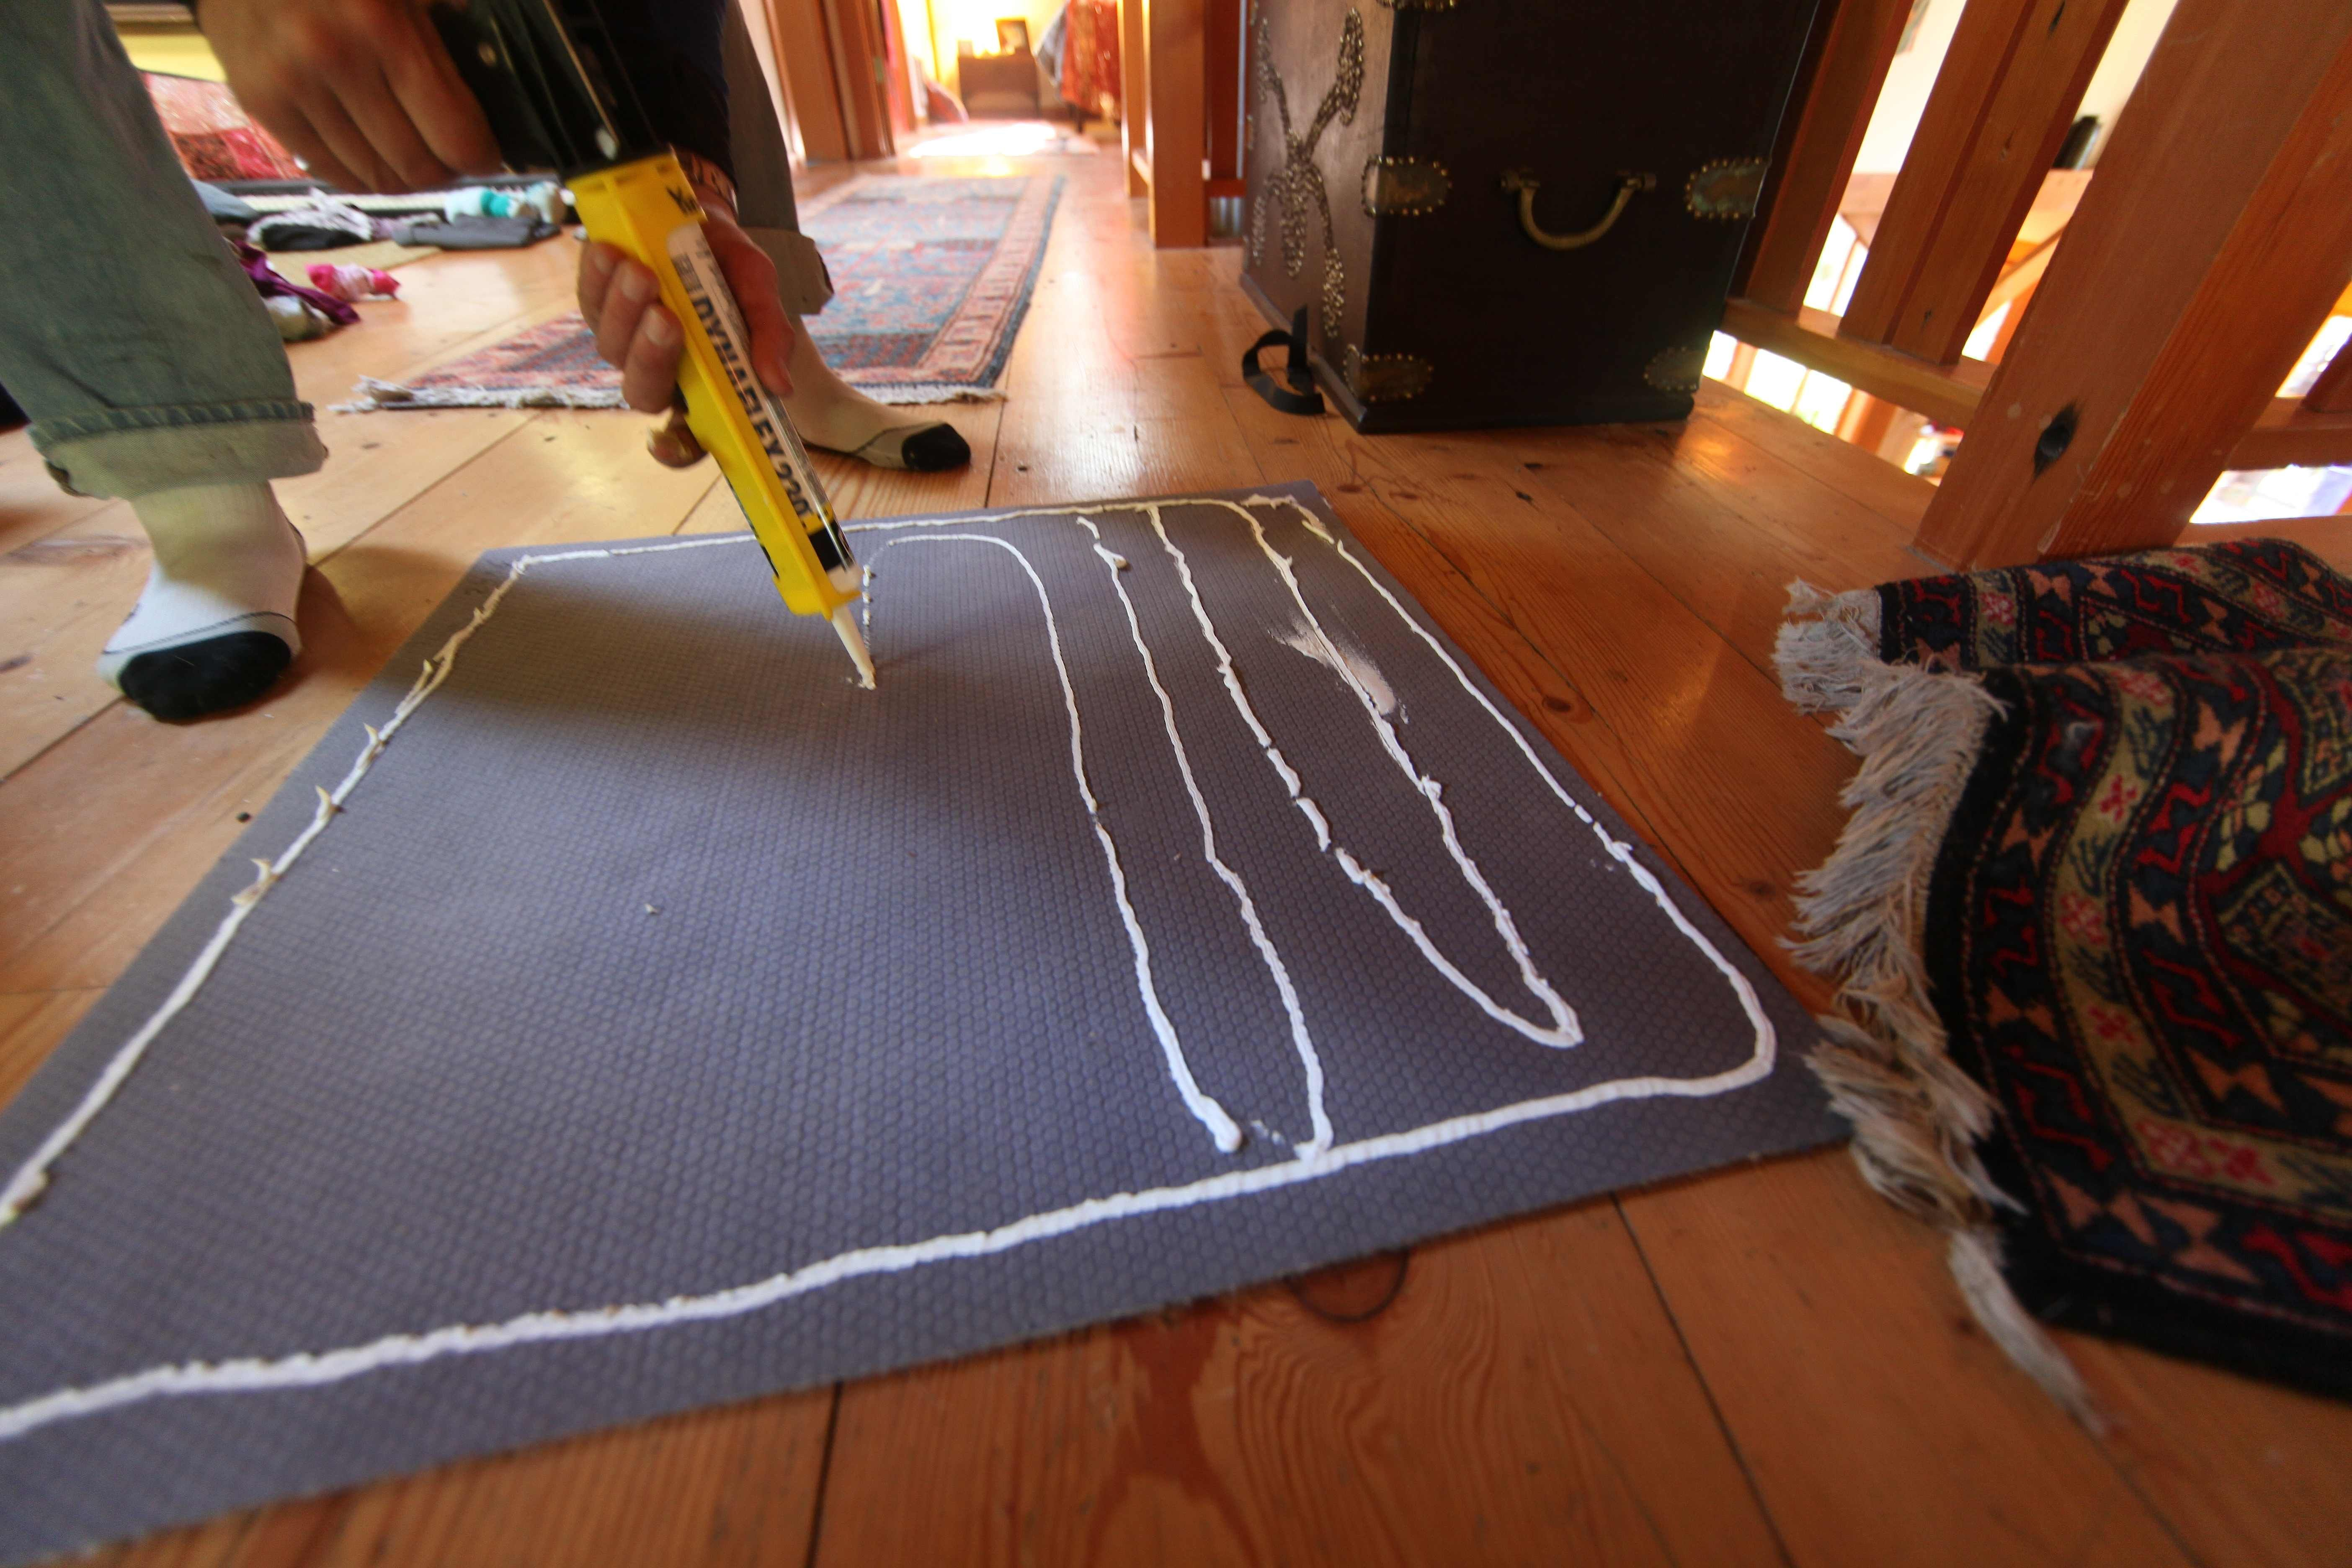 If Someone Tells You Silicone Caulking Works Well To Stick Your Carpet Pad The Floor